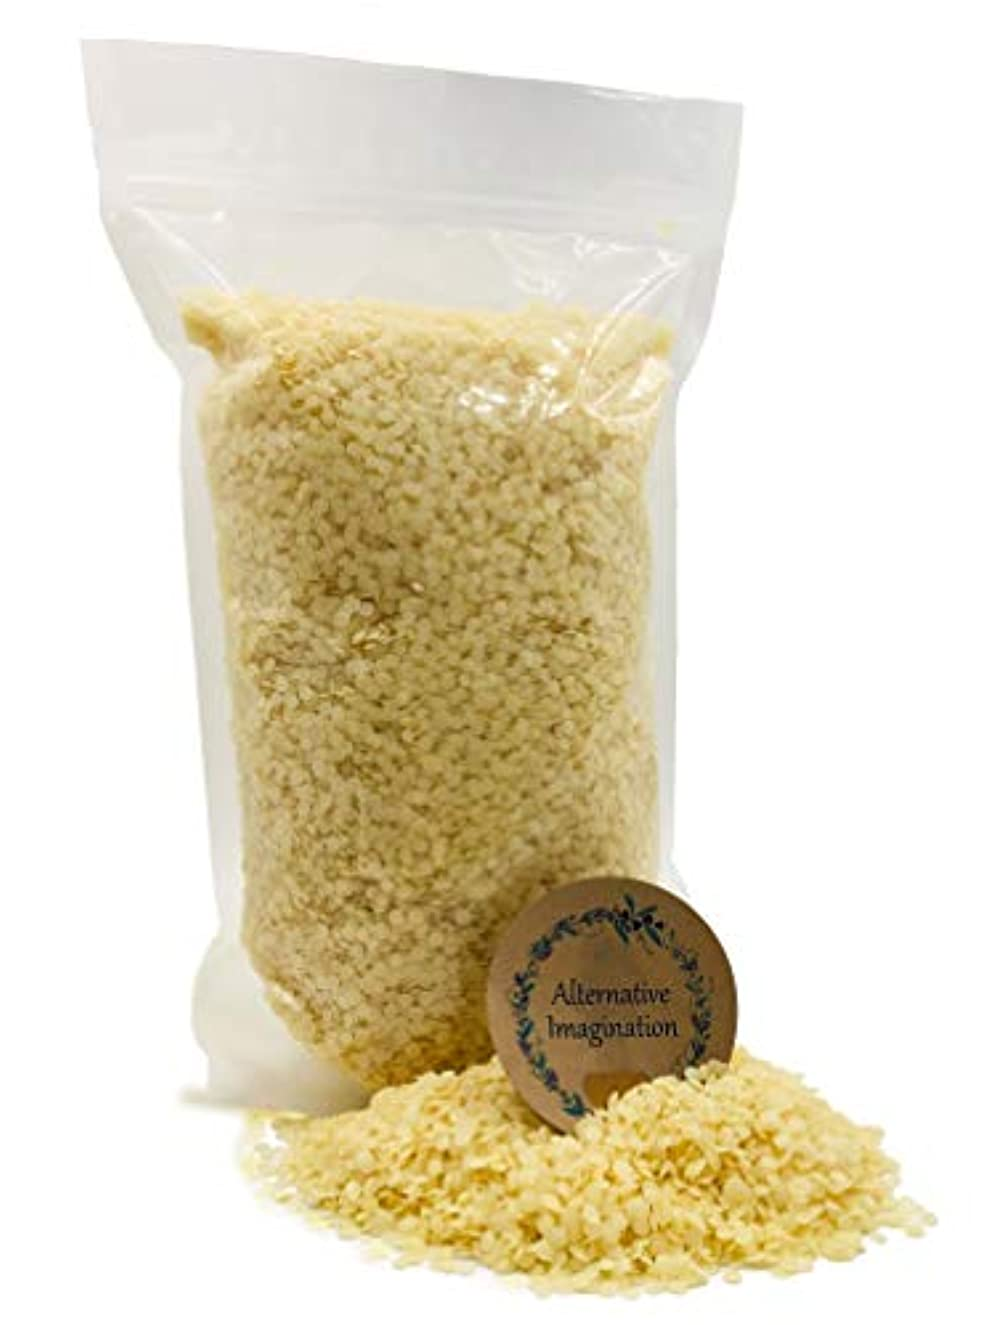 100% Pure Beeswax Pastilles. Alternative Imagination Brand. (2 Pounds, Yellow)